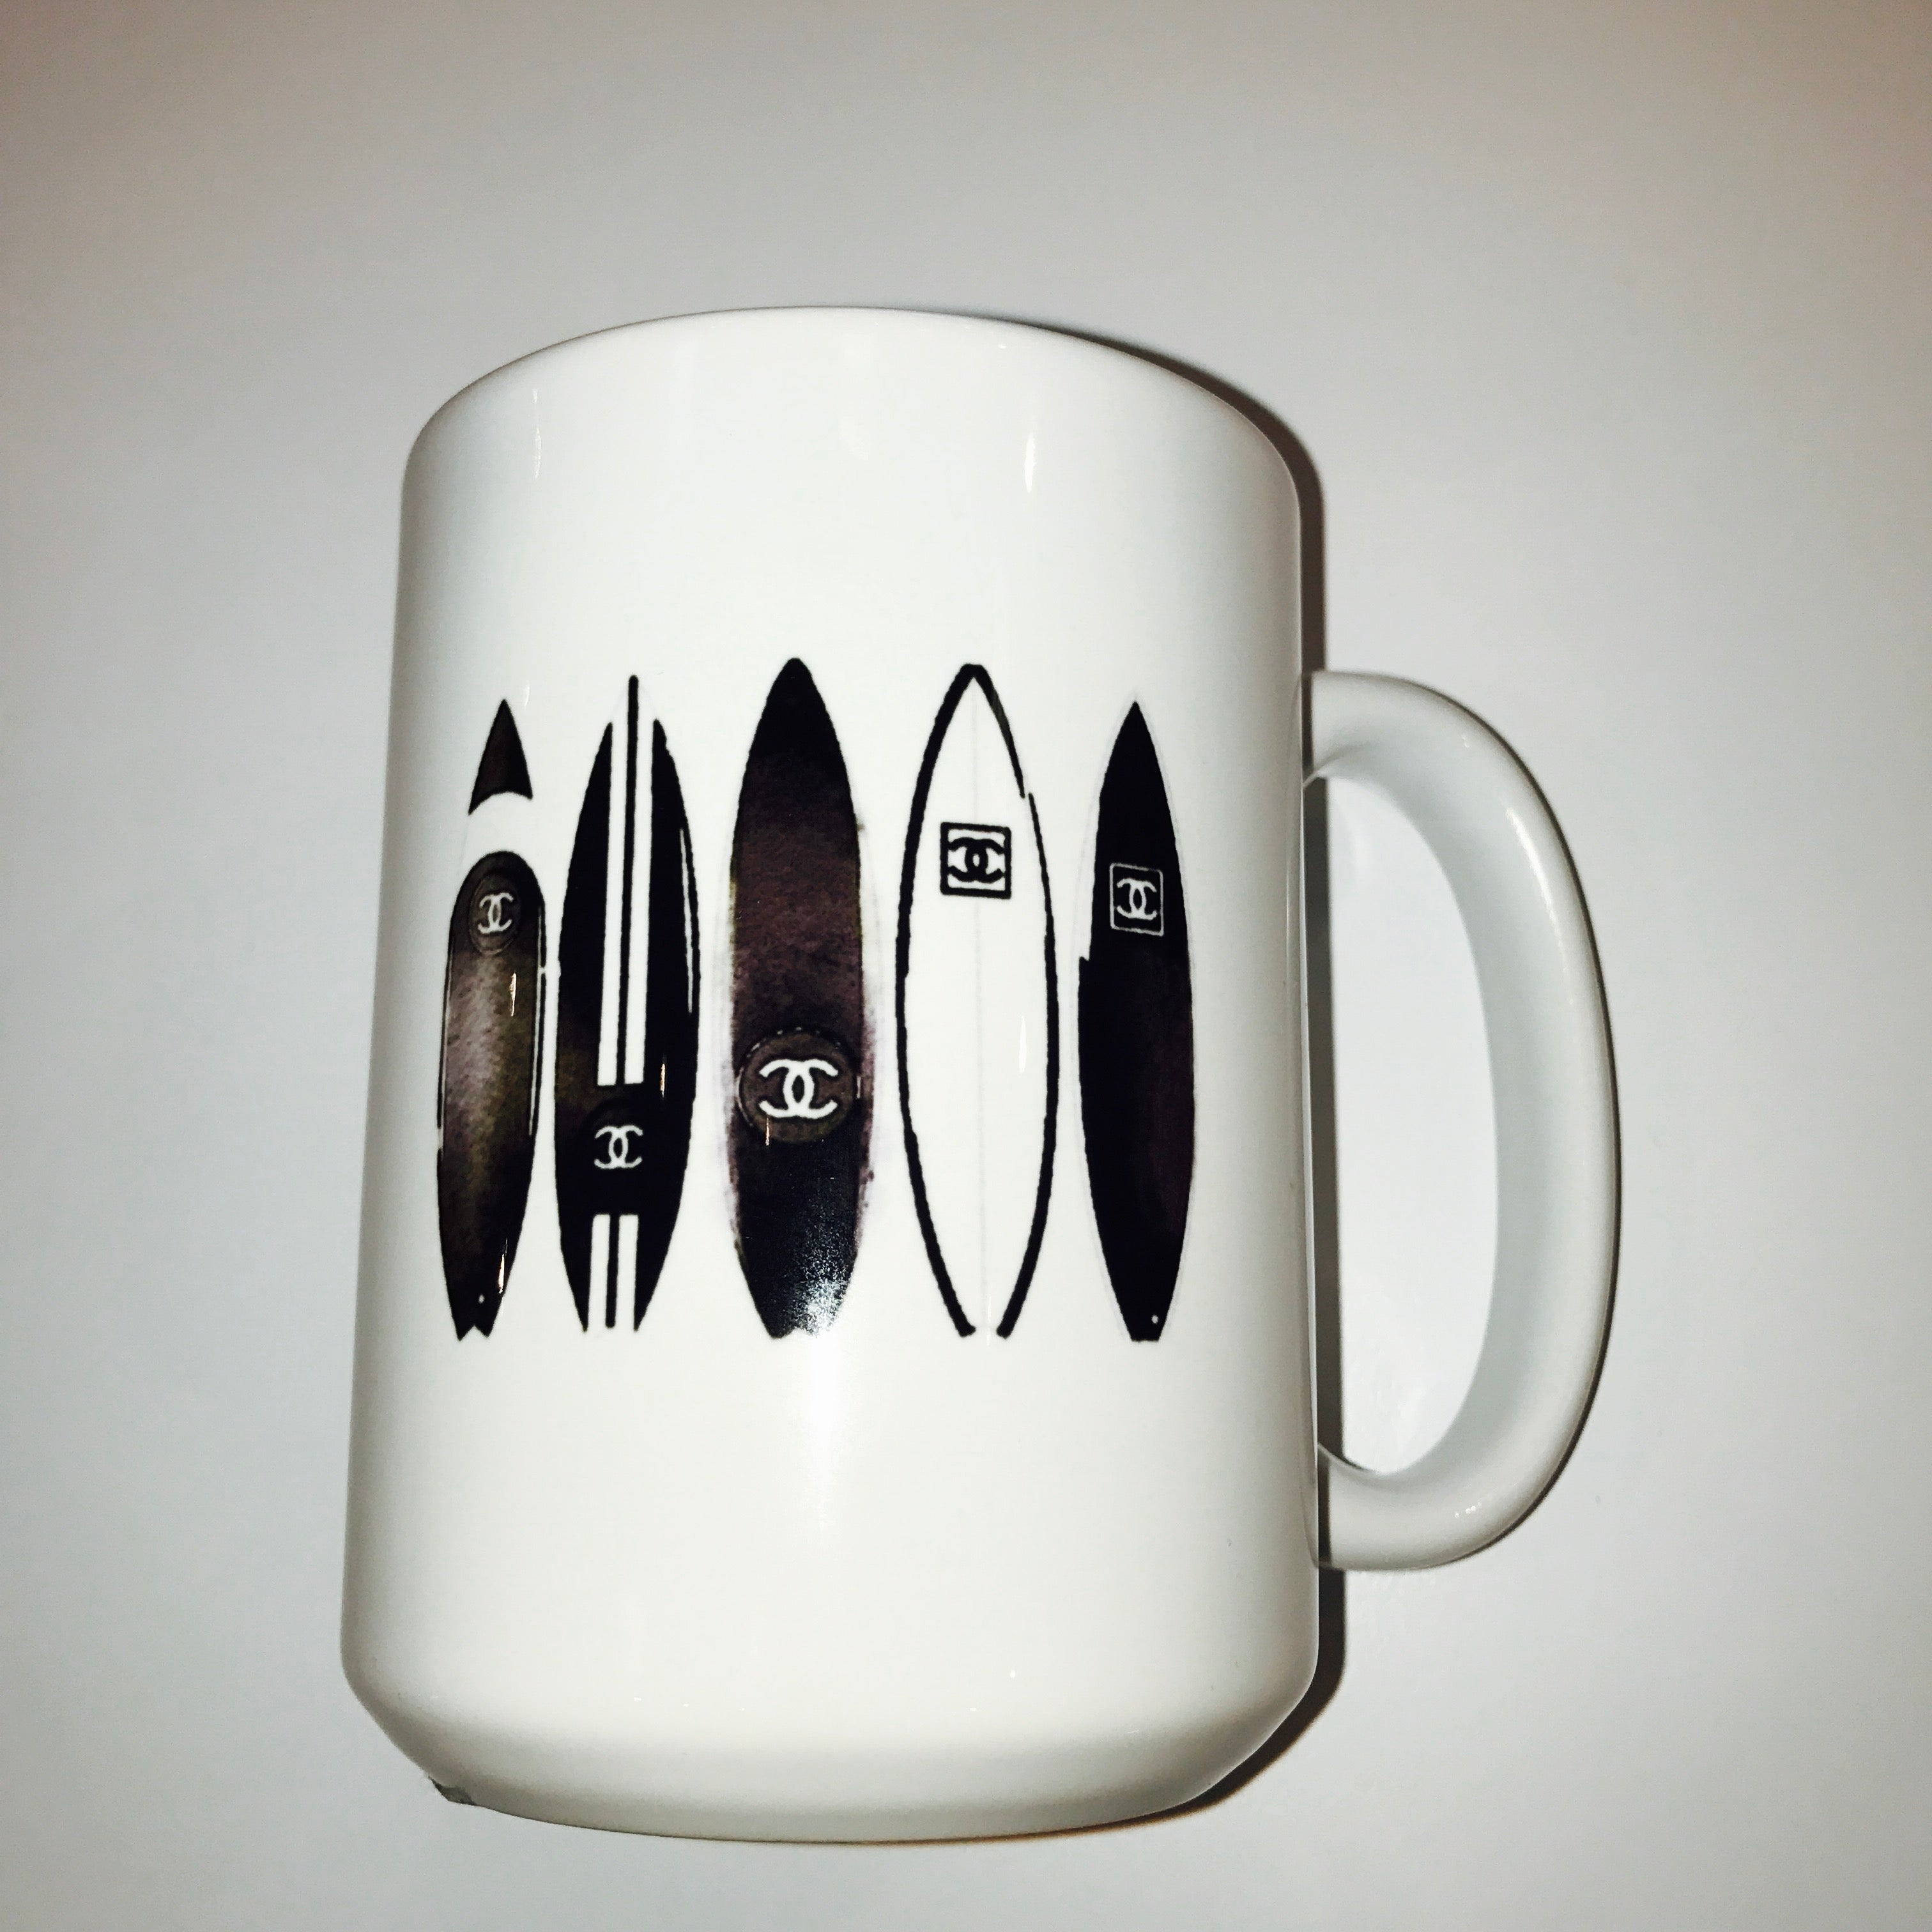 Chanel Surfboards Mug